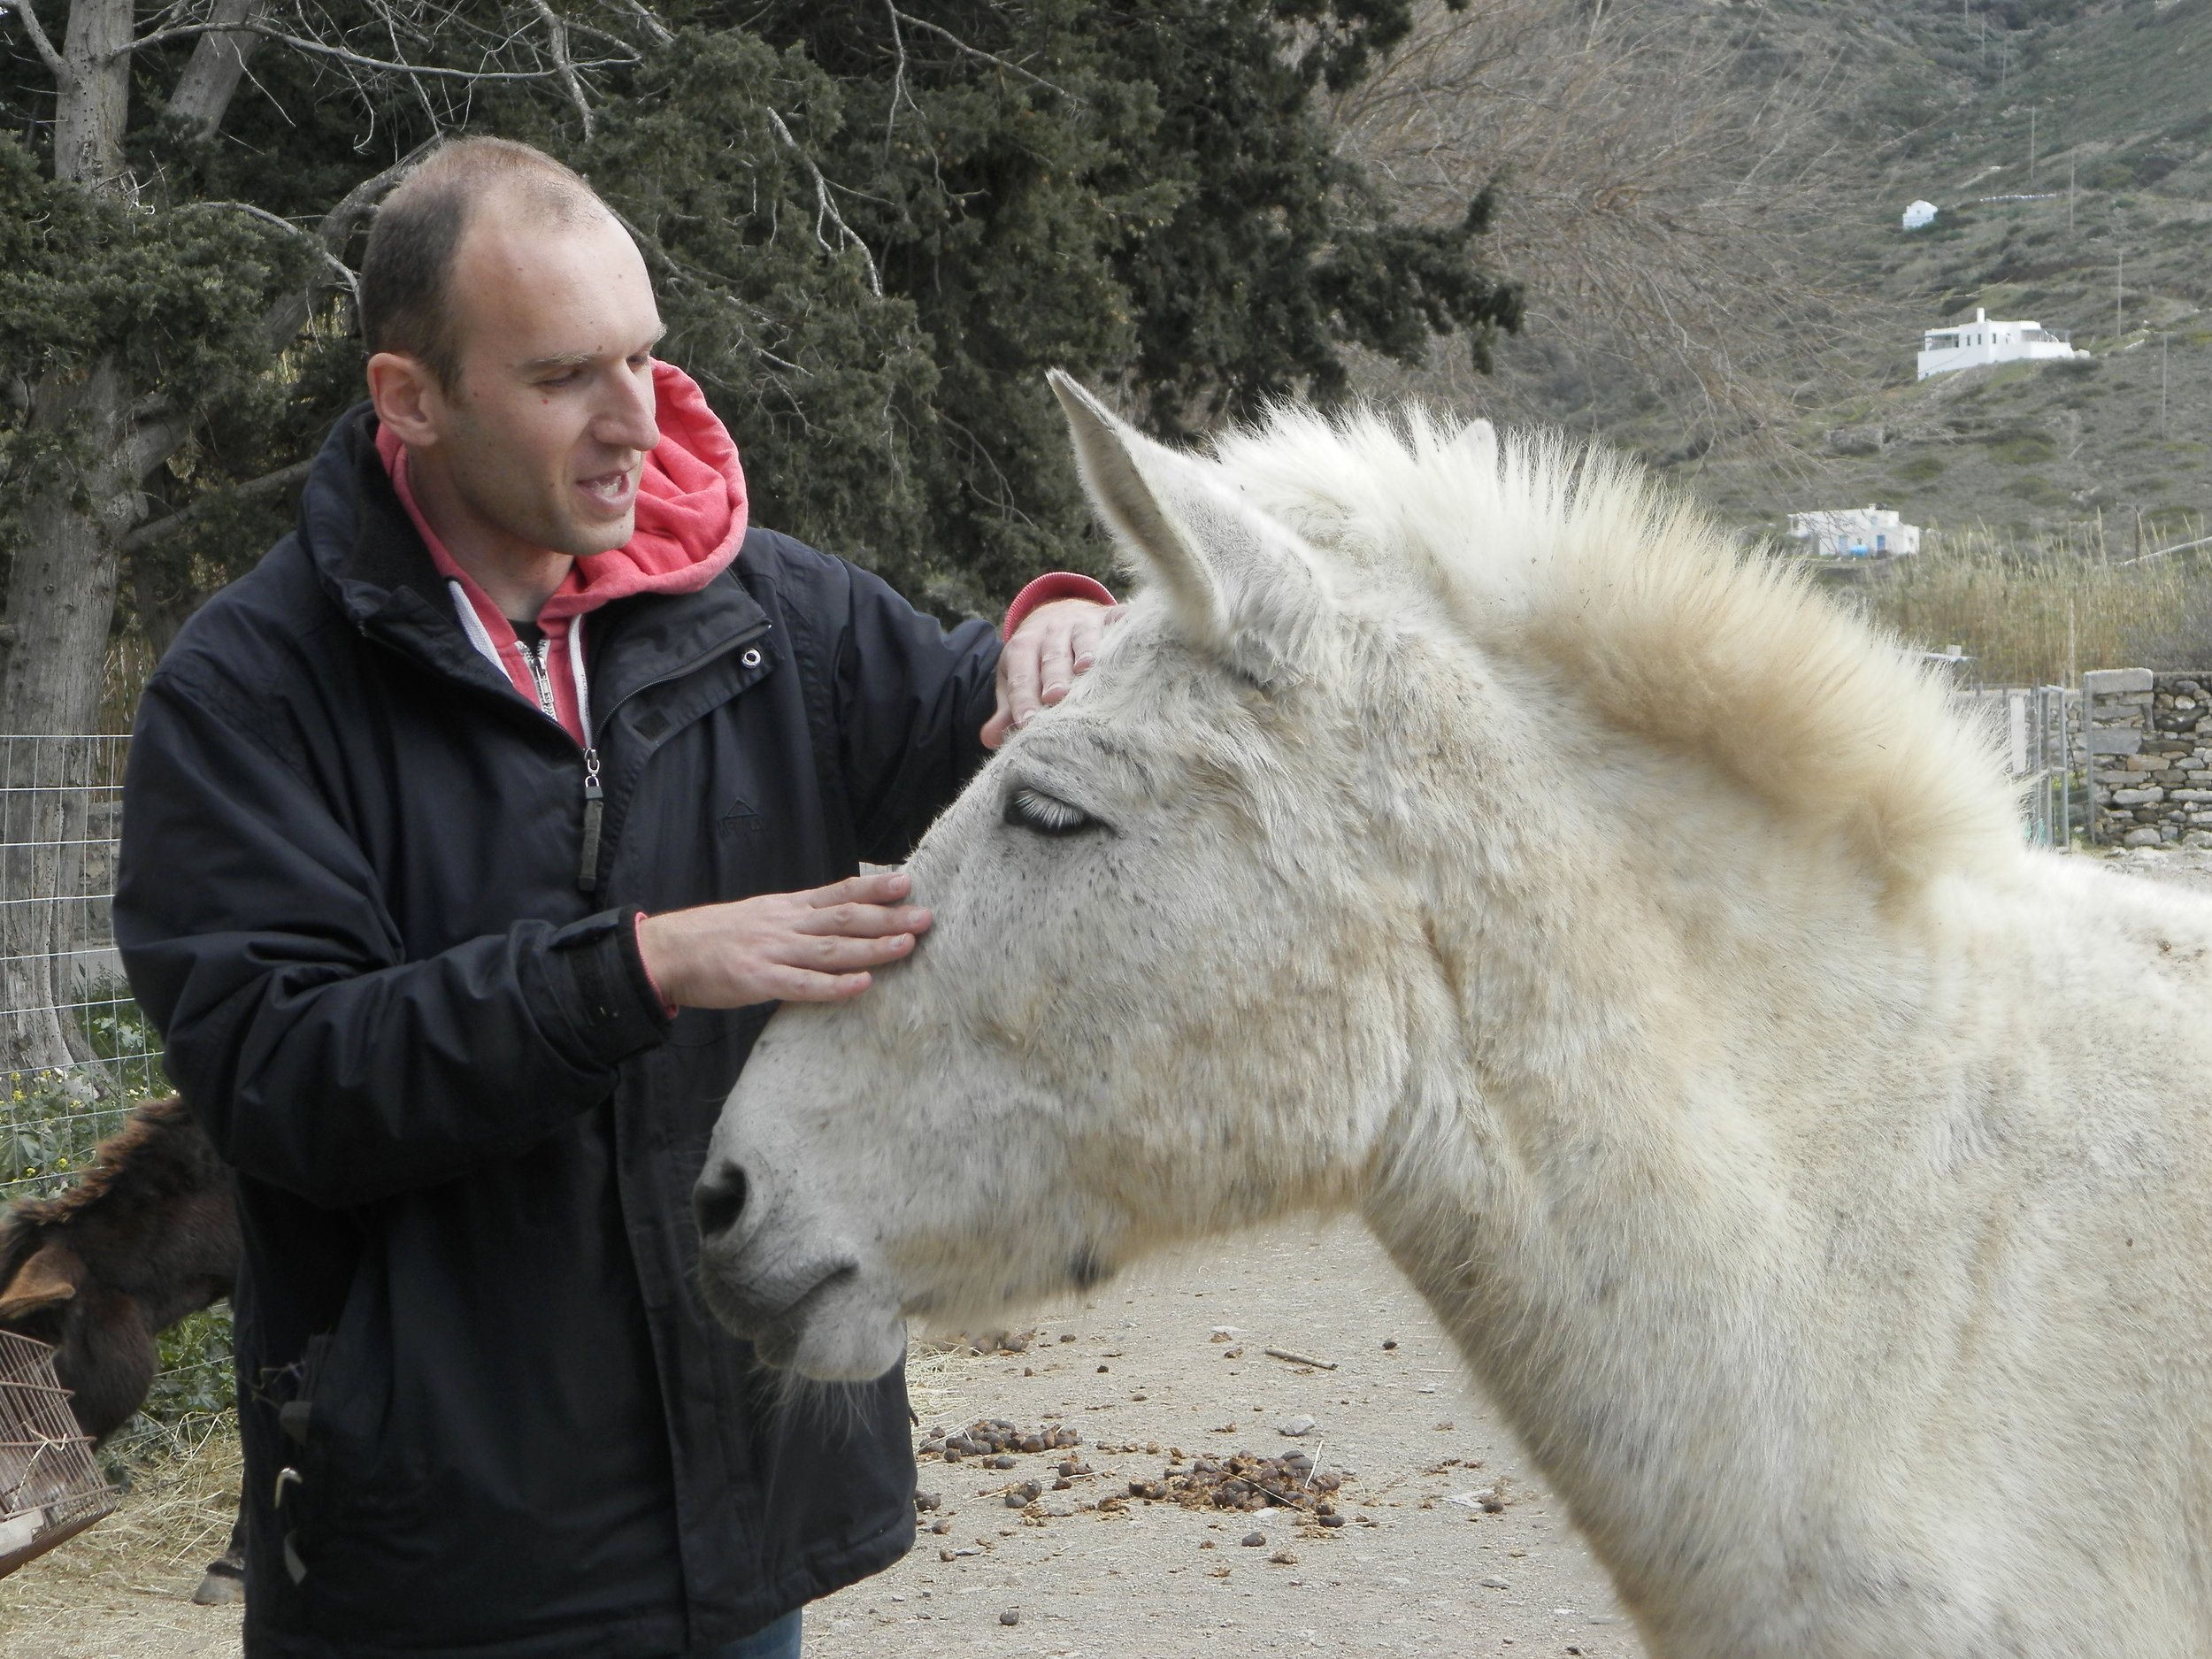 Meropi receives caresses from our volunteer Giorgos